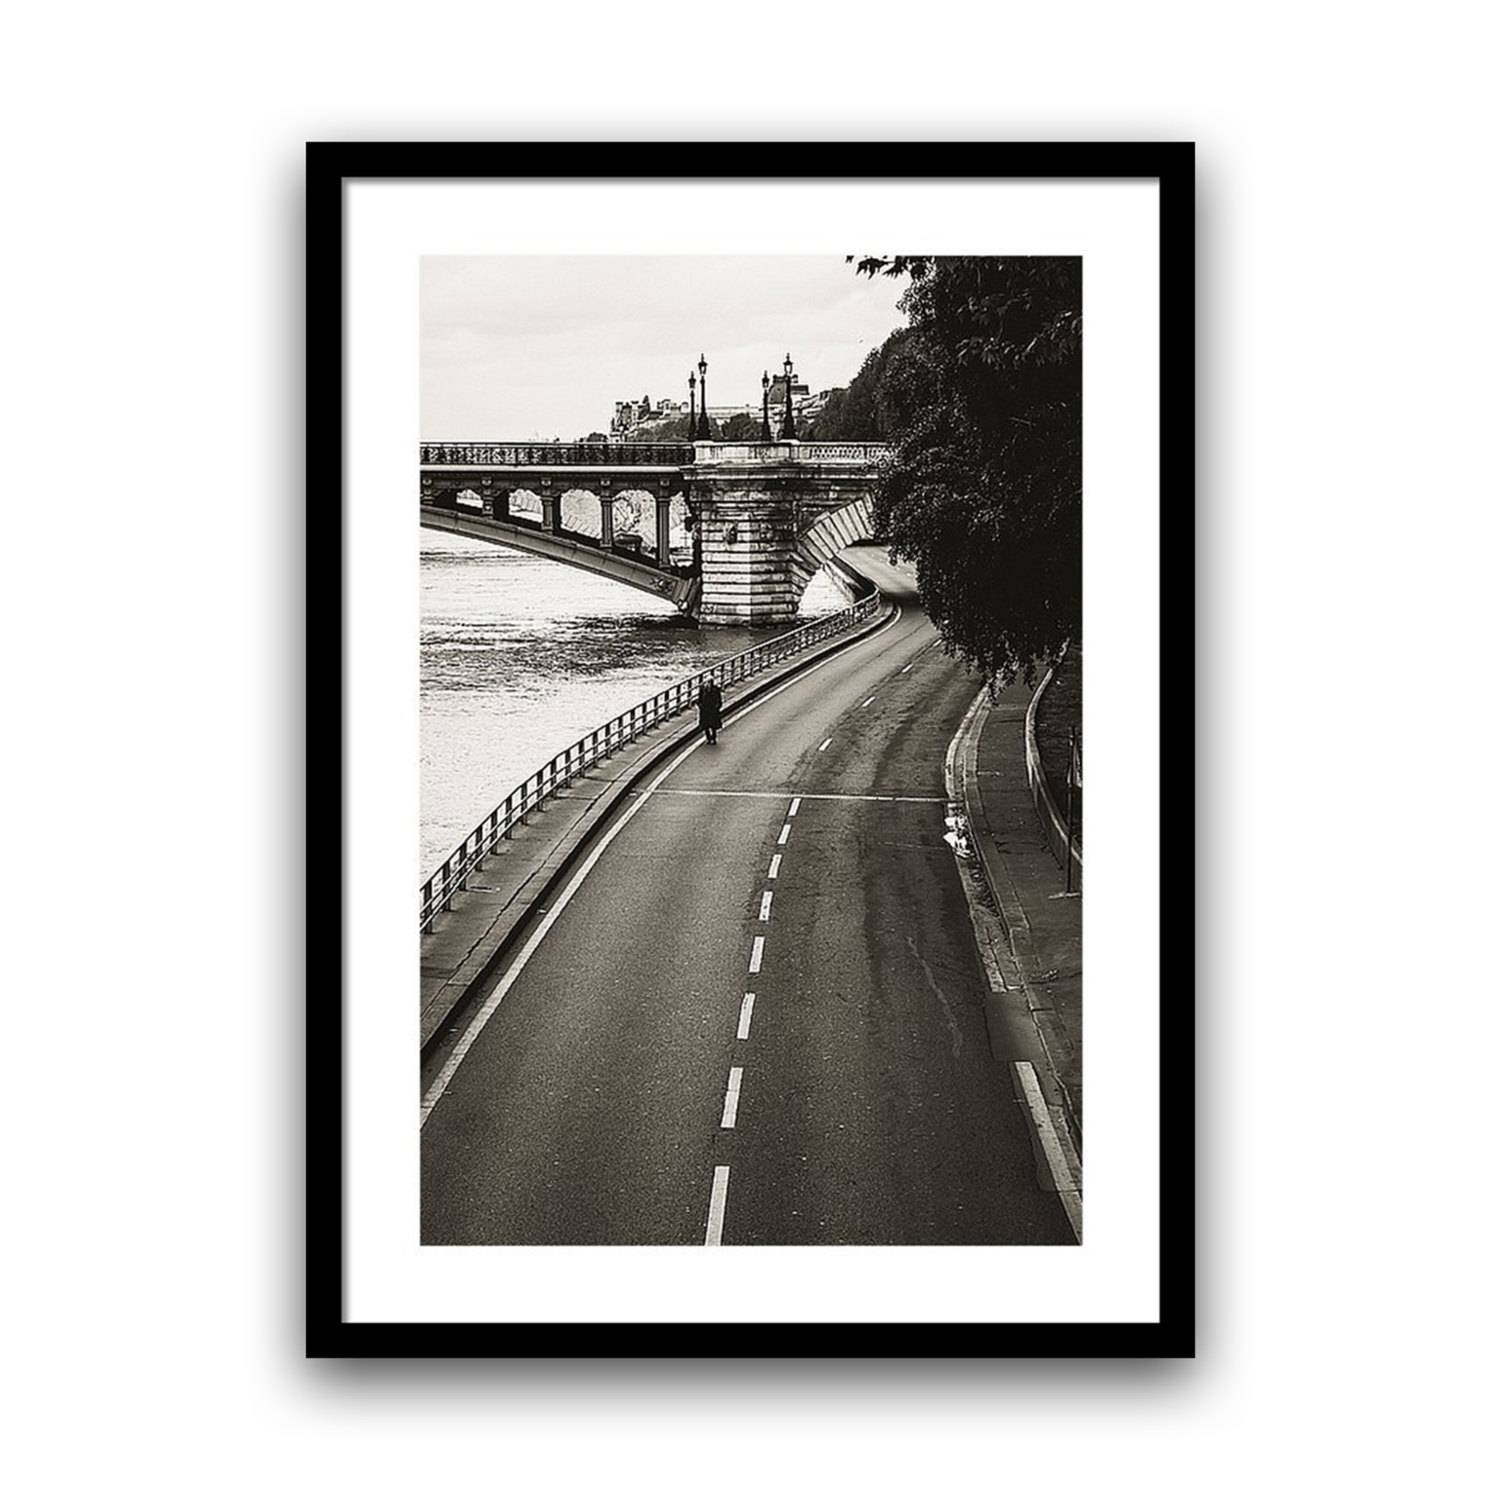 Paris Pictures, Paris Decor, French Wall Art, Black And White Throughout Most Up To Date Black And White Paris Wall Art (View 20 of 25)